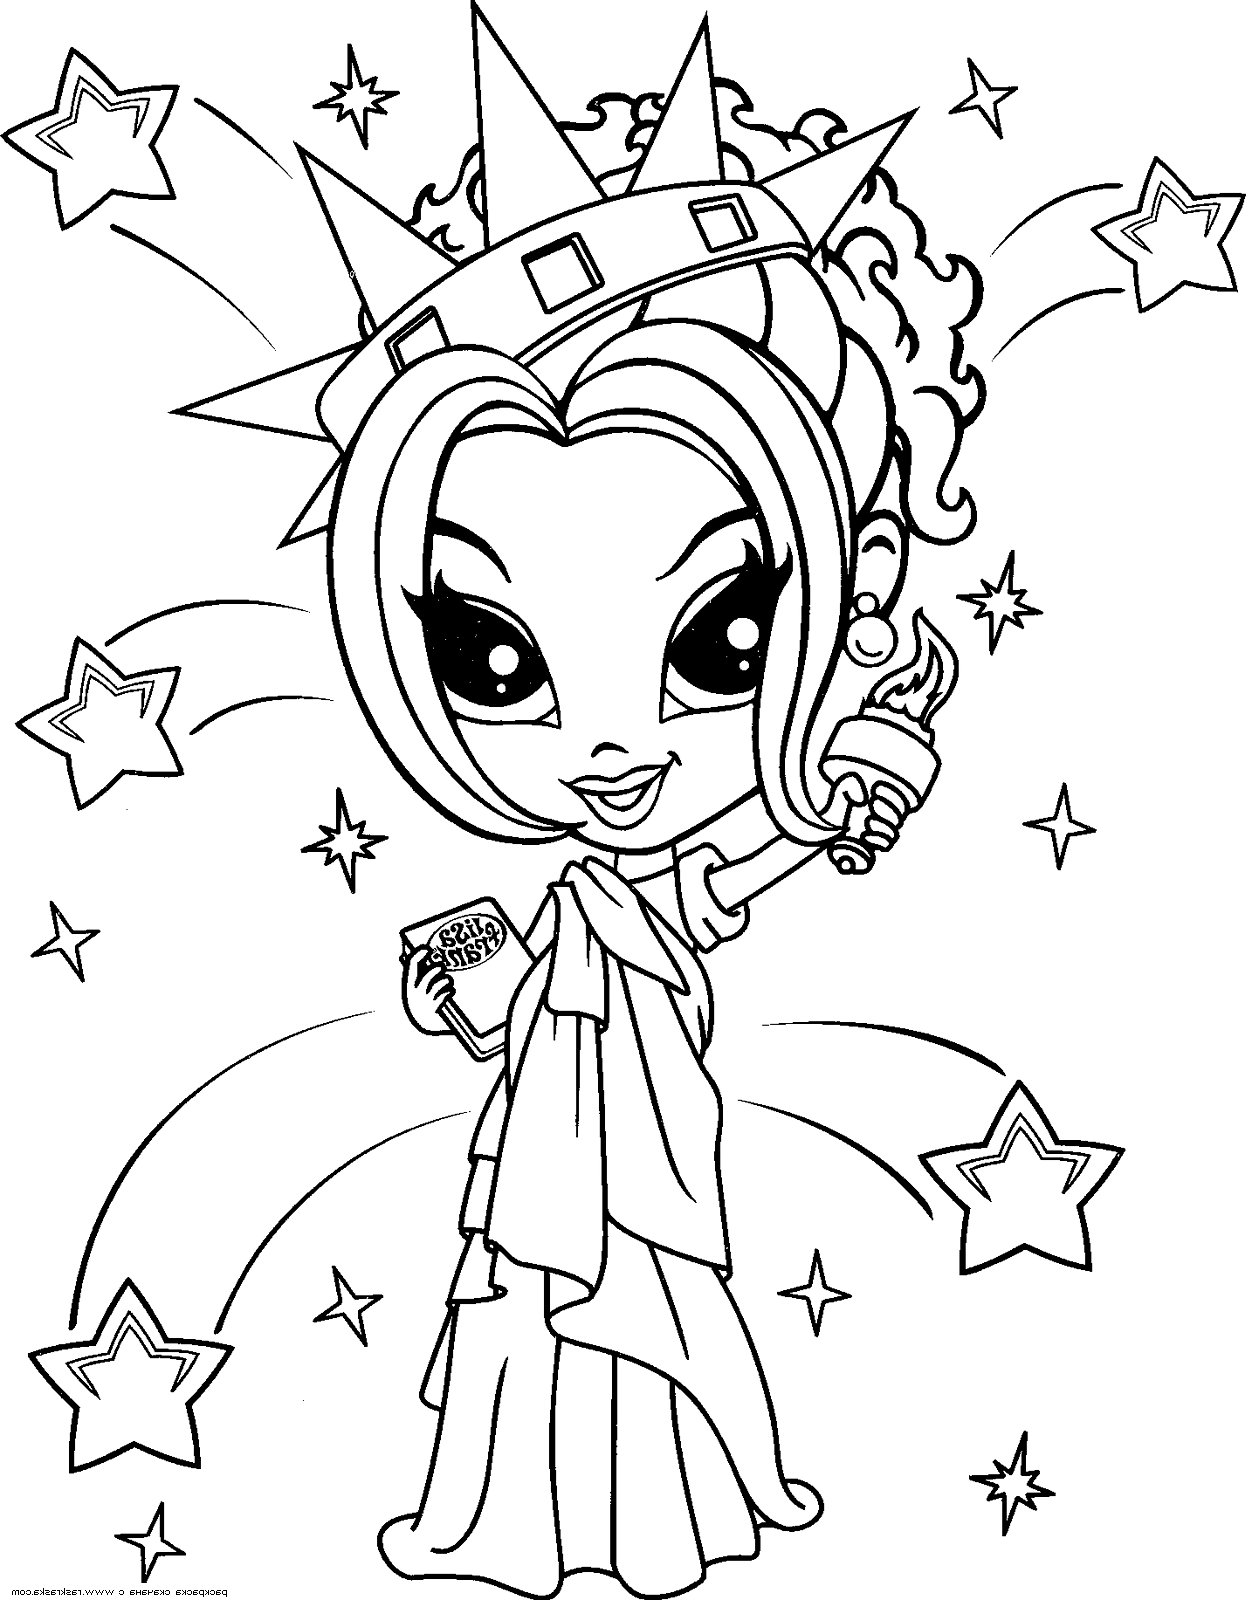 lisa frank coloring pages - photo#27